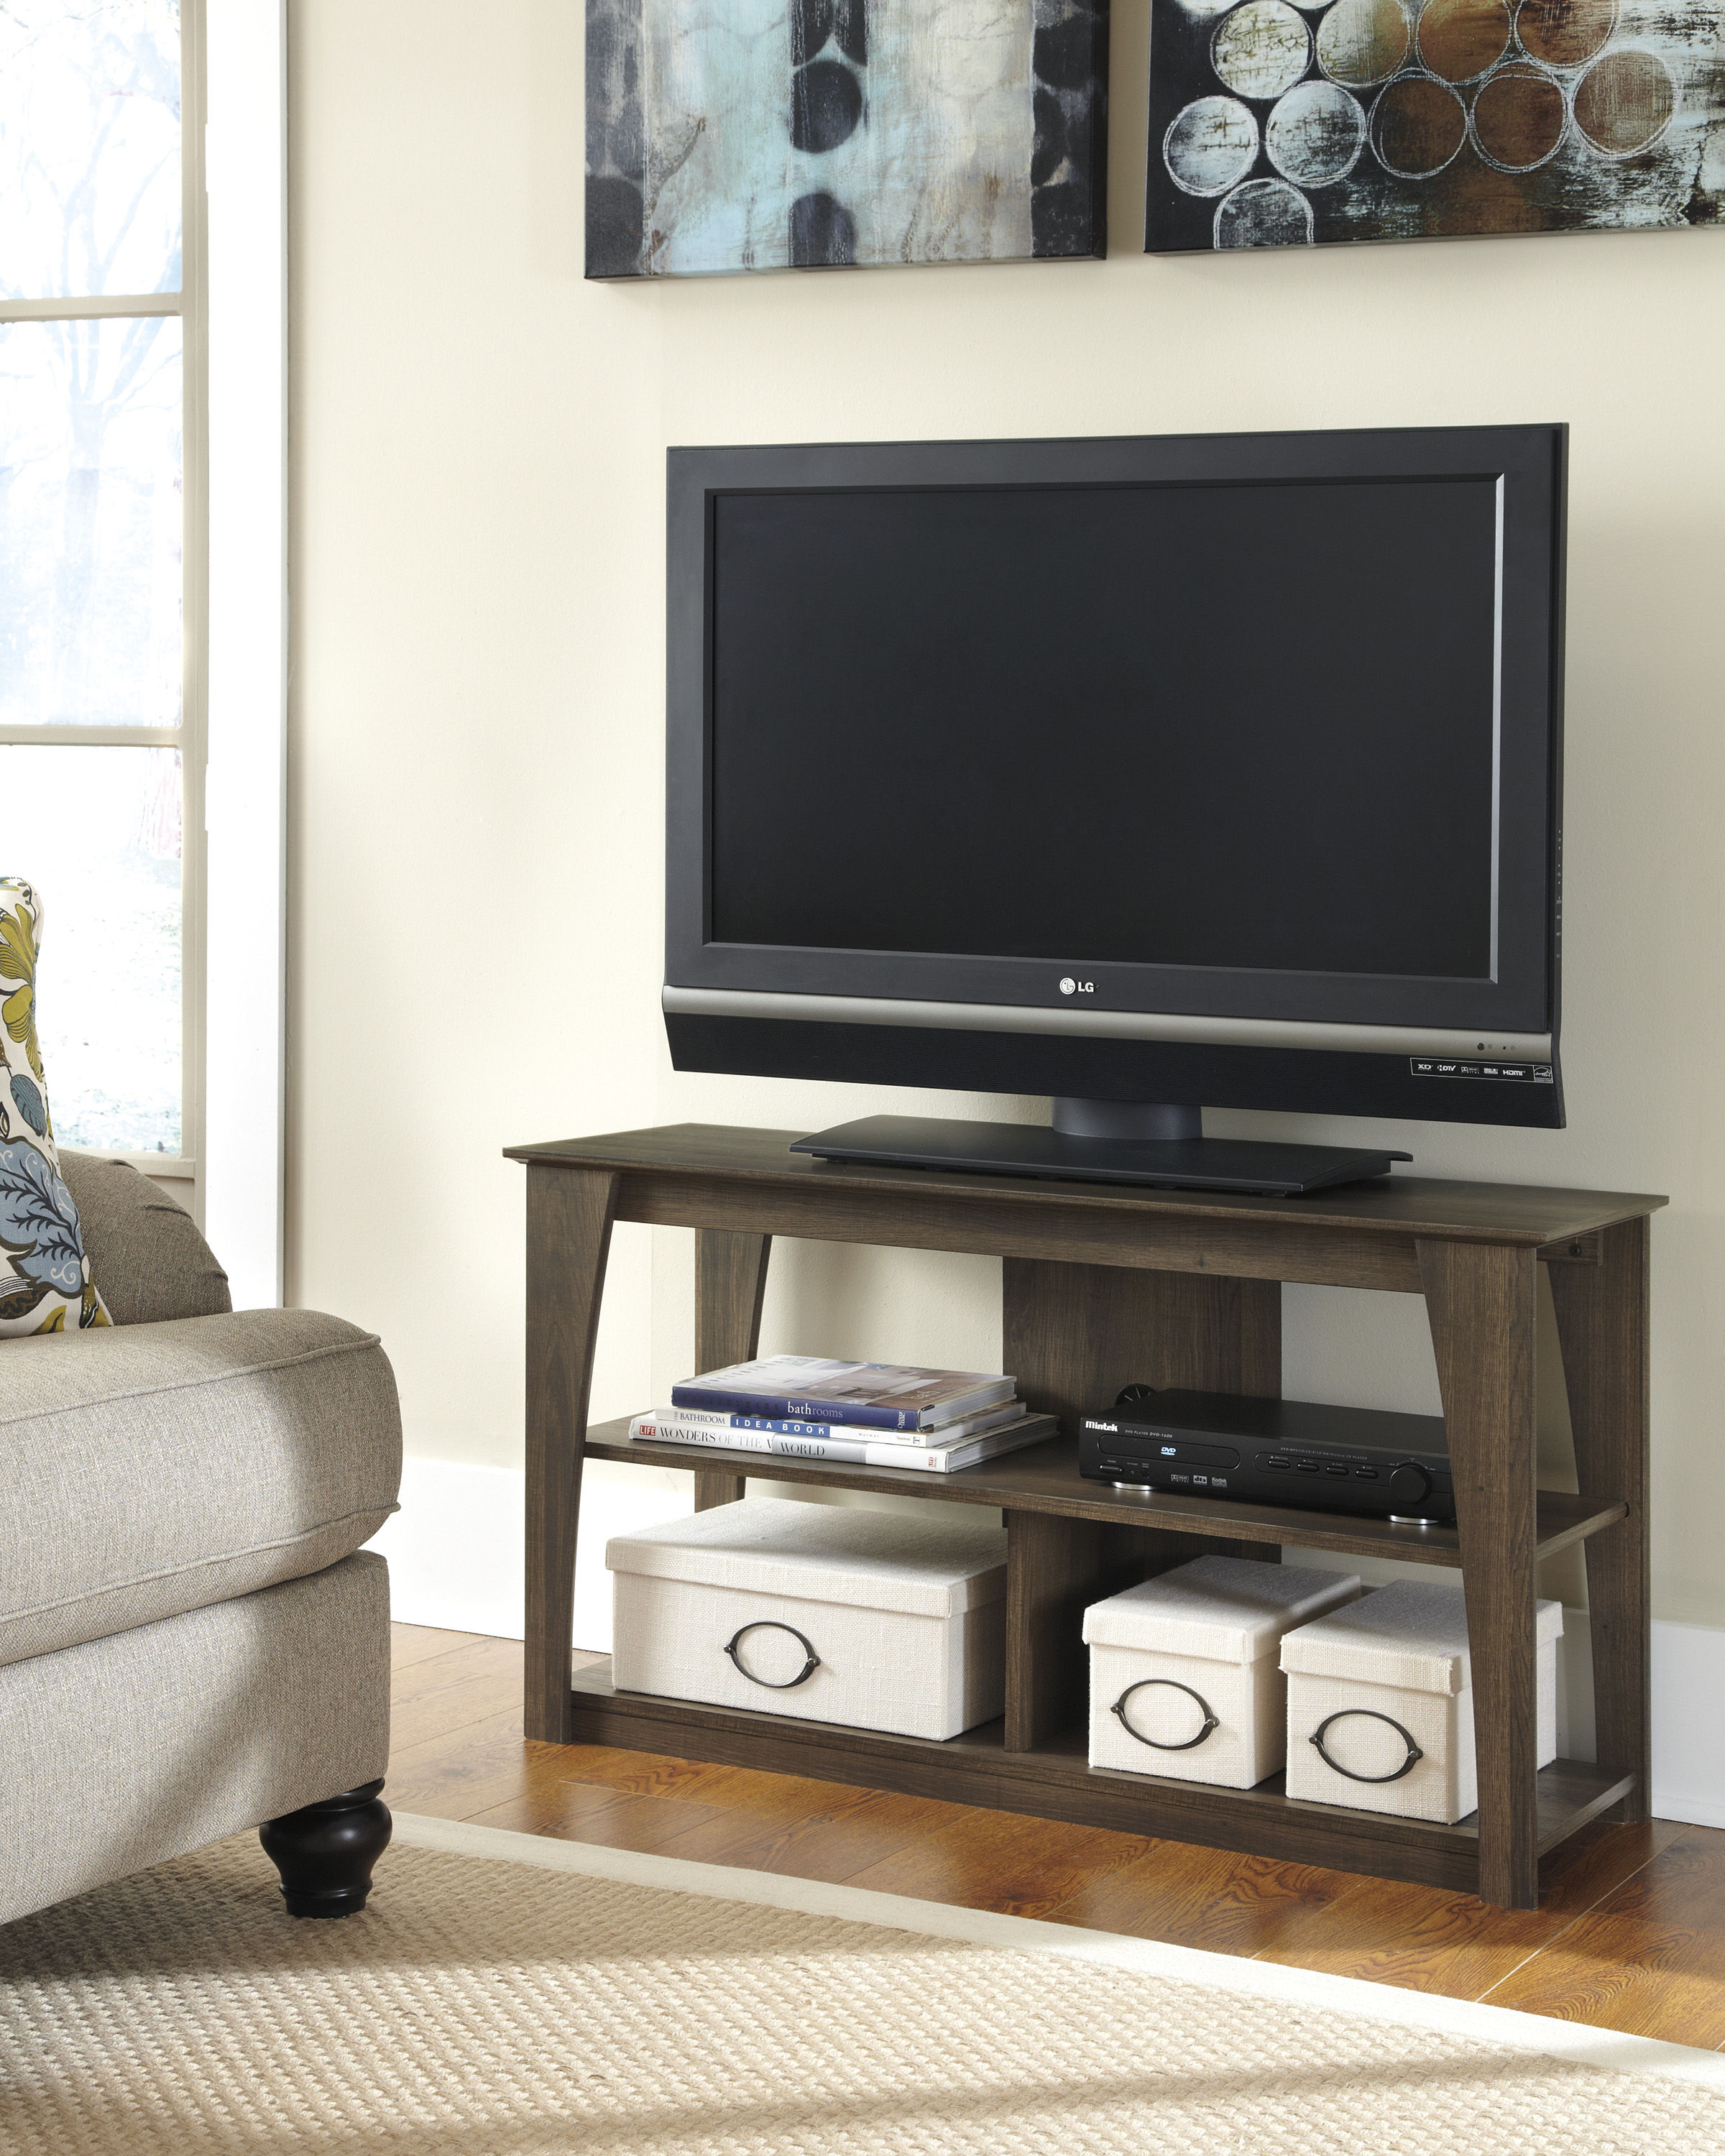 Ashley Furniture Frantin Brown Wood Tv Stand The Classy Home